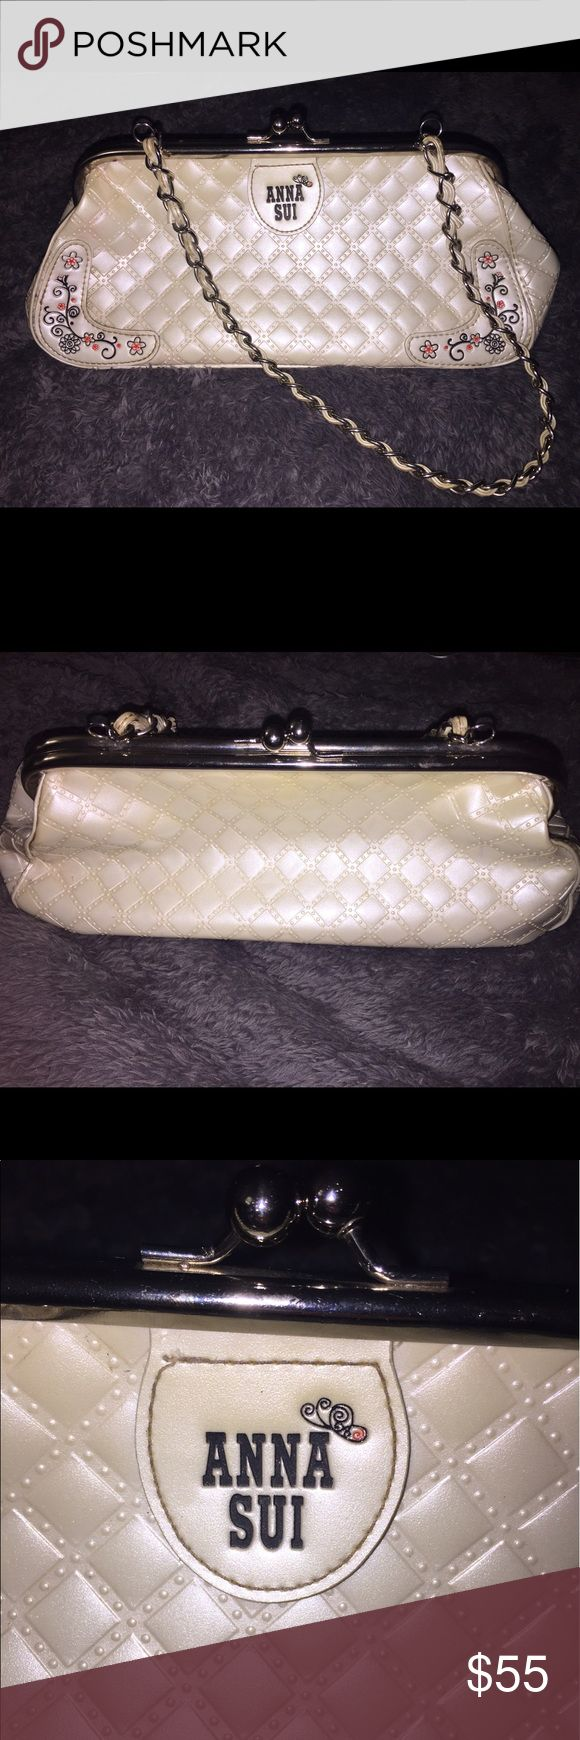 Purse White patent leather Anna Sui shoulder bag. Metal and leather chain strap with red lining on inside. Flower detail on front bottom corners. Anna Sui Bags Shoulder Bags